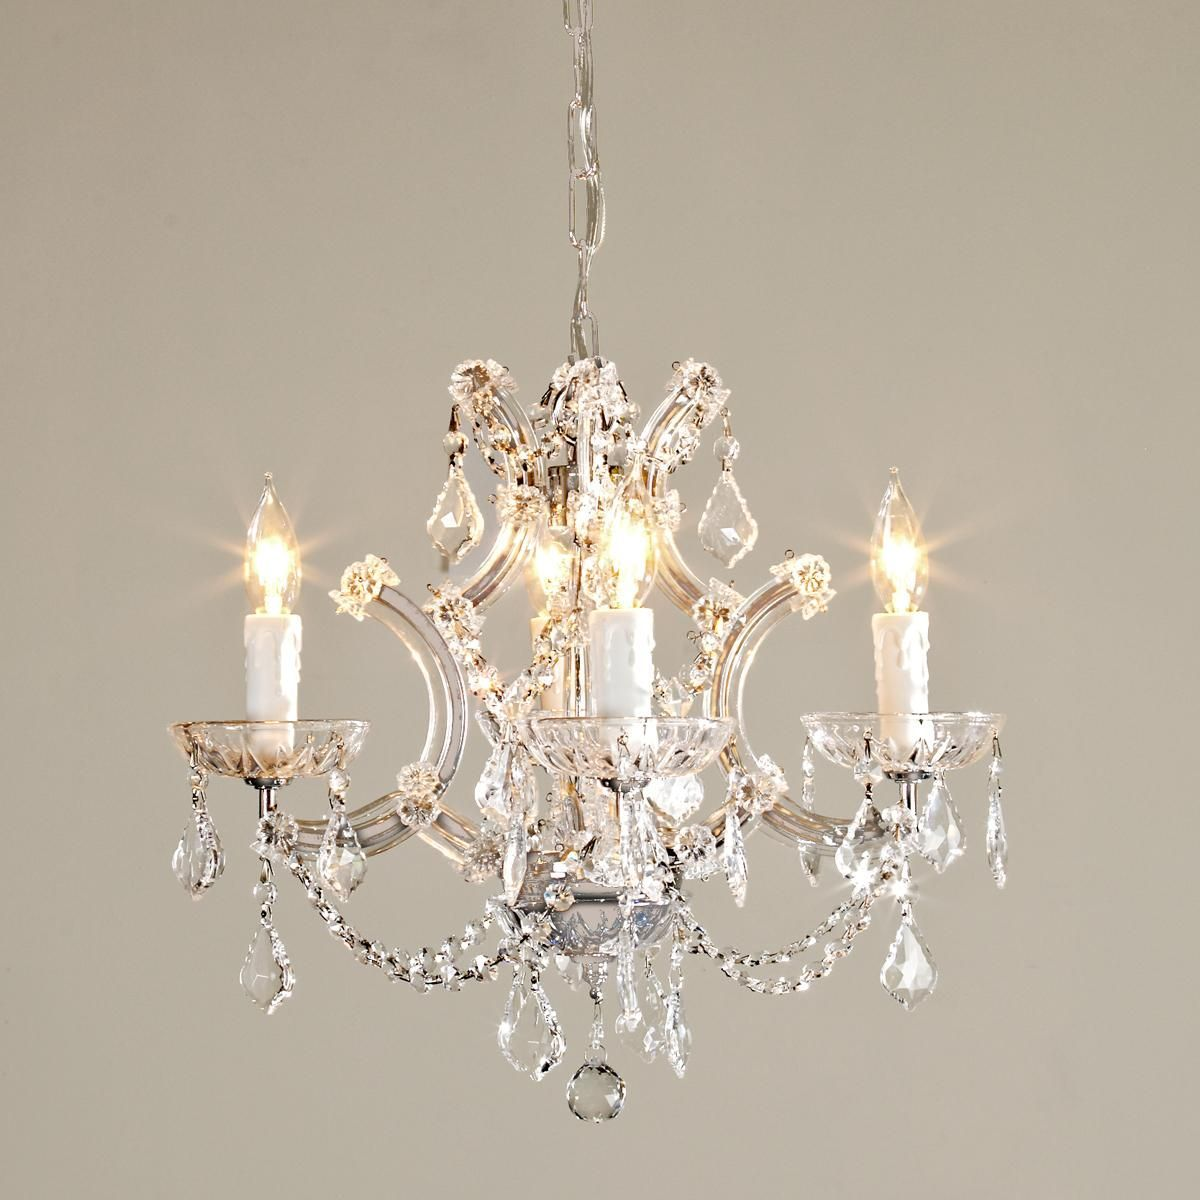 The Luxury Designs You Have Been Waiting To Light Up Your Space Www Lightingstores Eu Visit Round Crystal Chandelier Chandelier Bedroom Crystal Chandelier